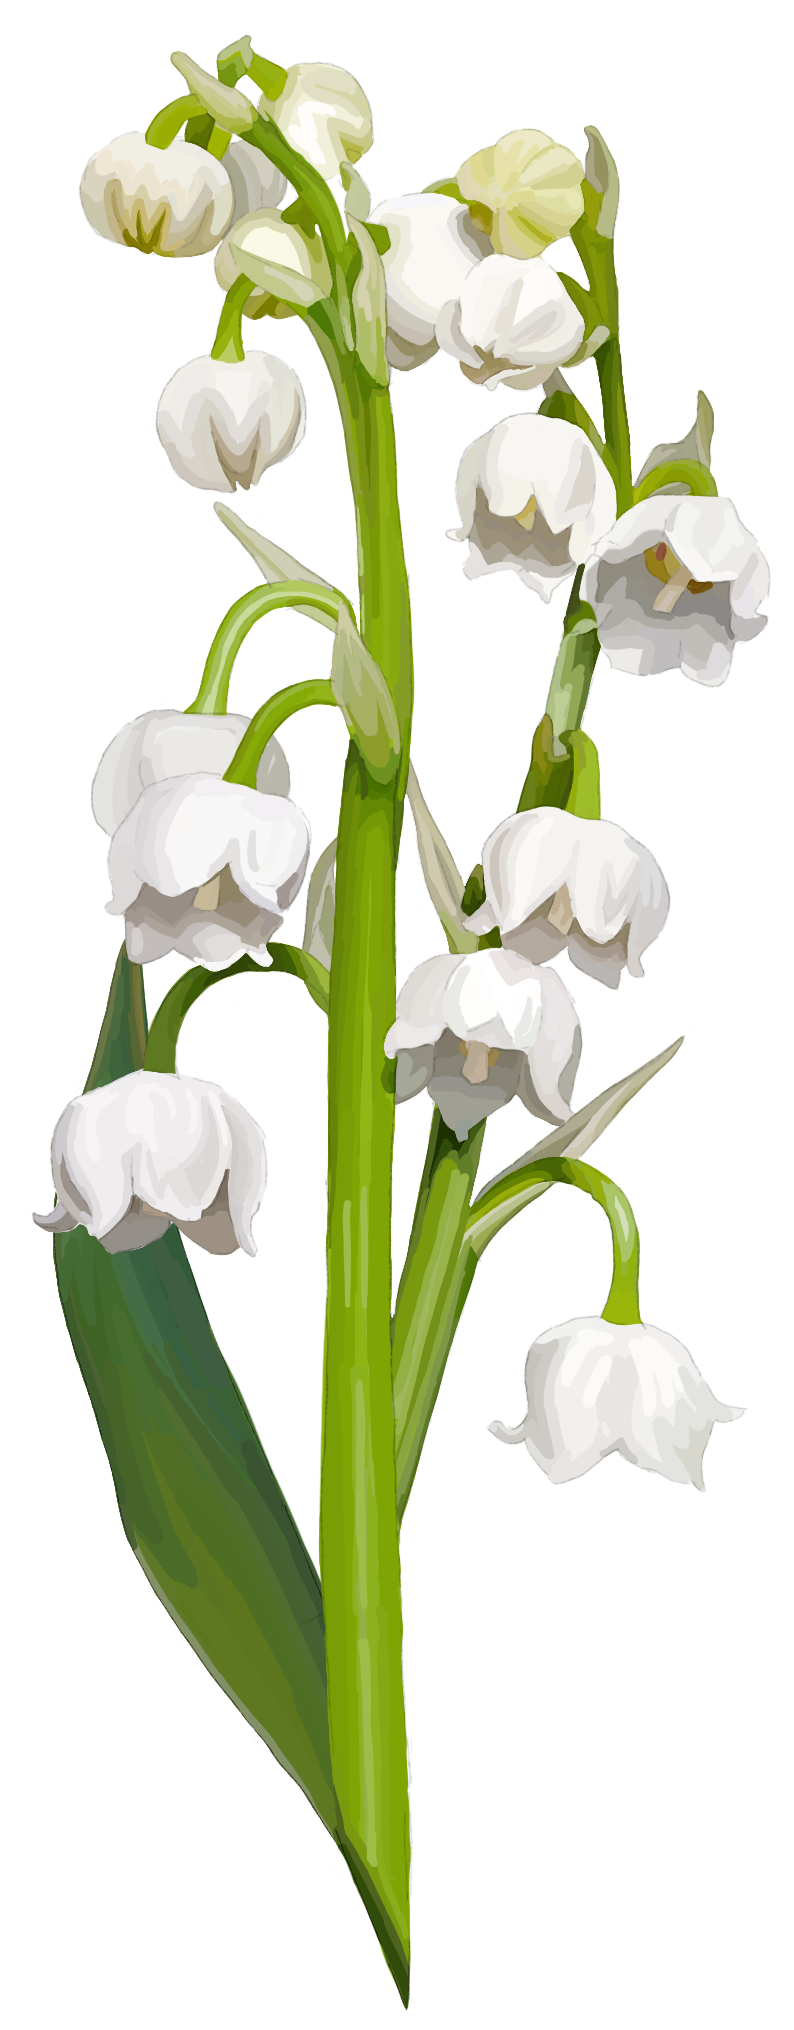 Lily of the valley. Convallaria majalis